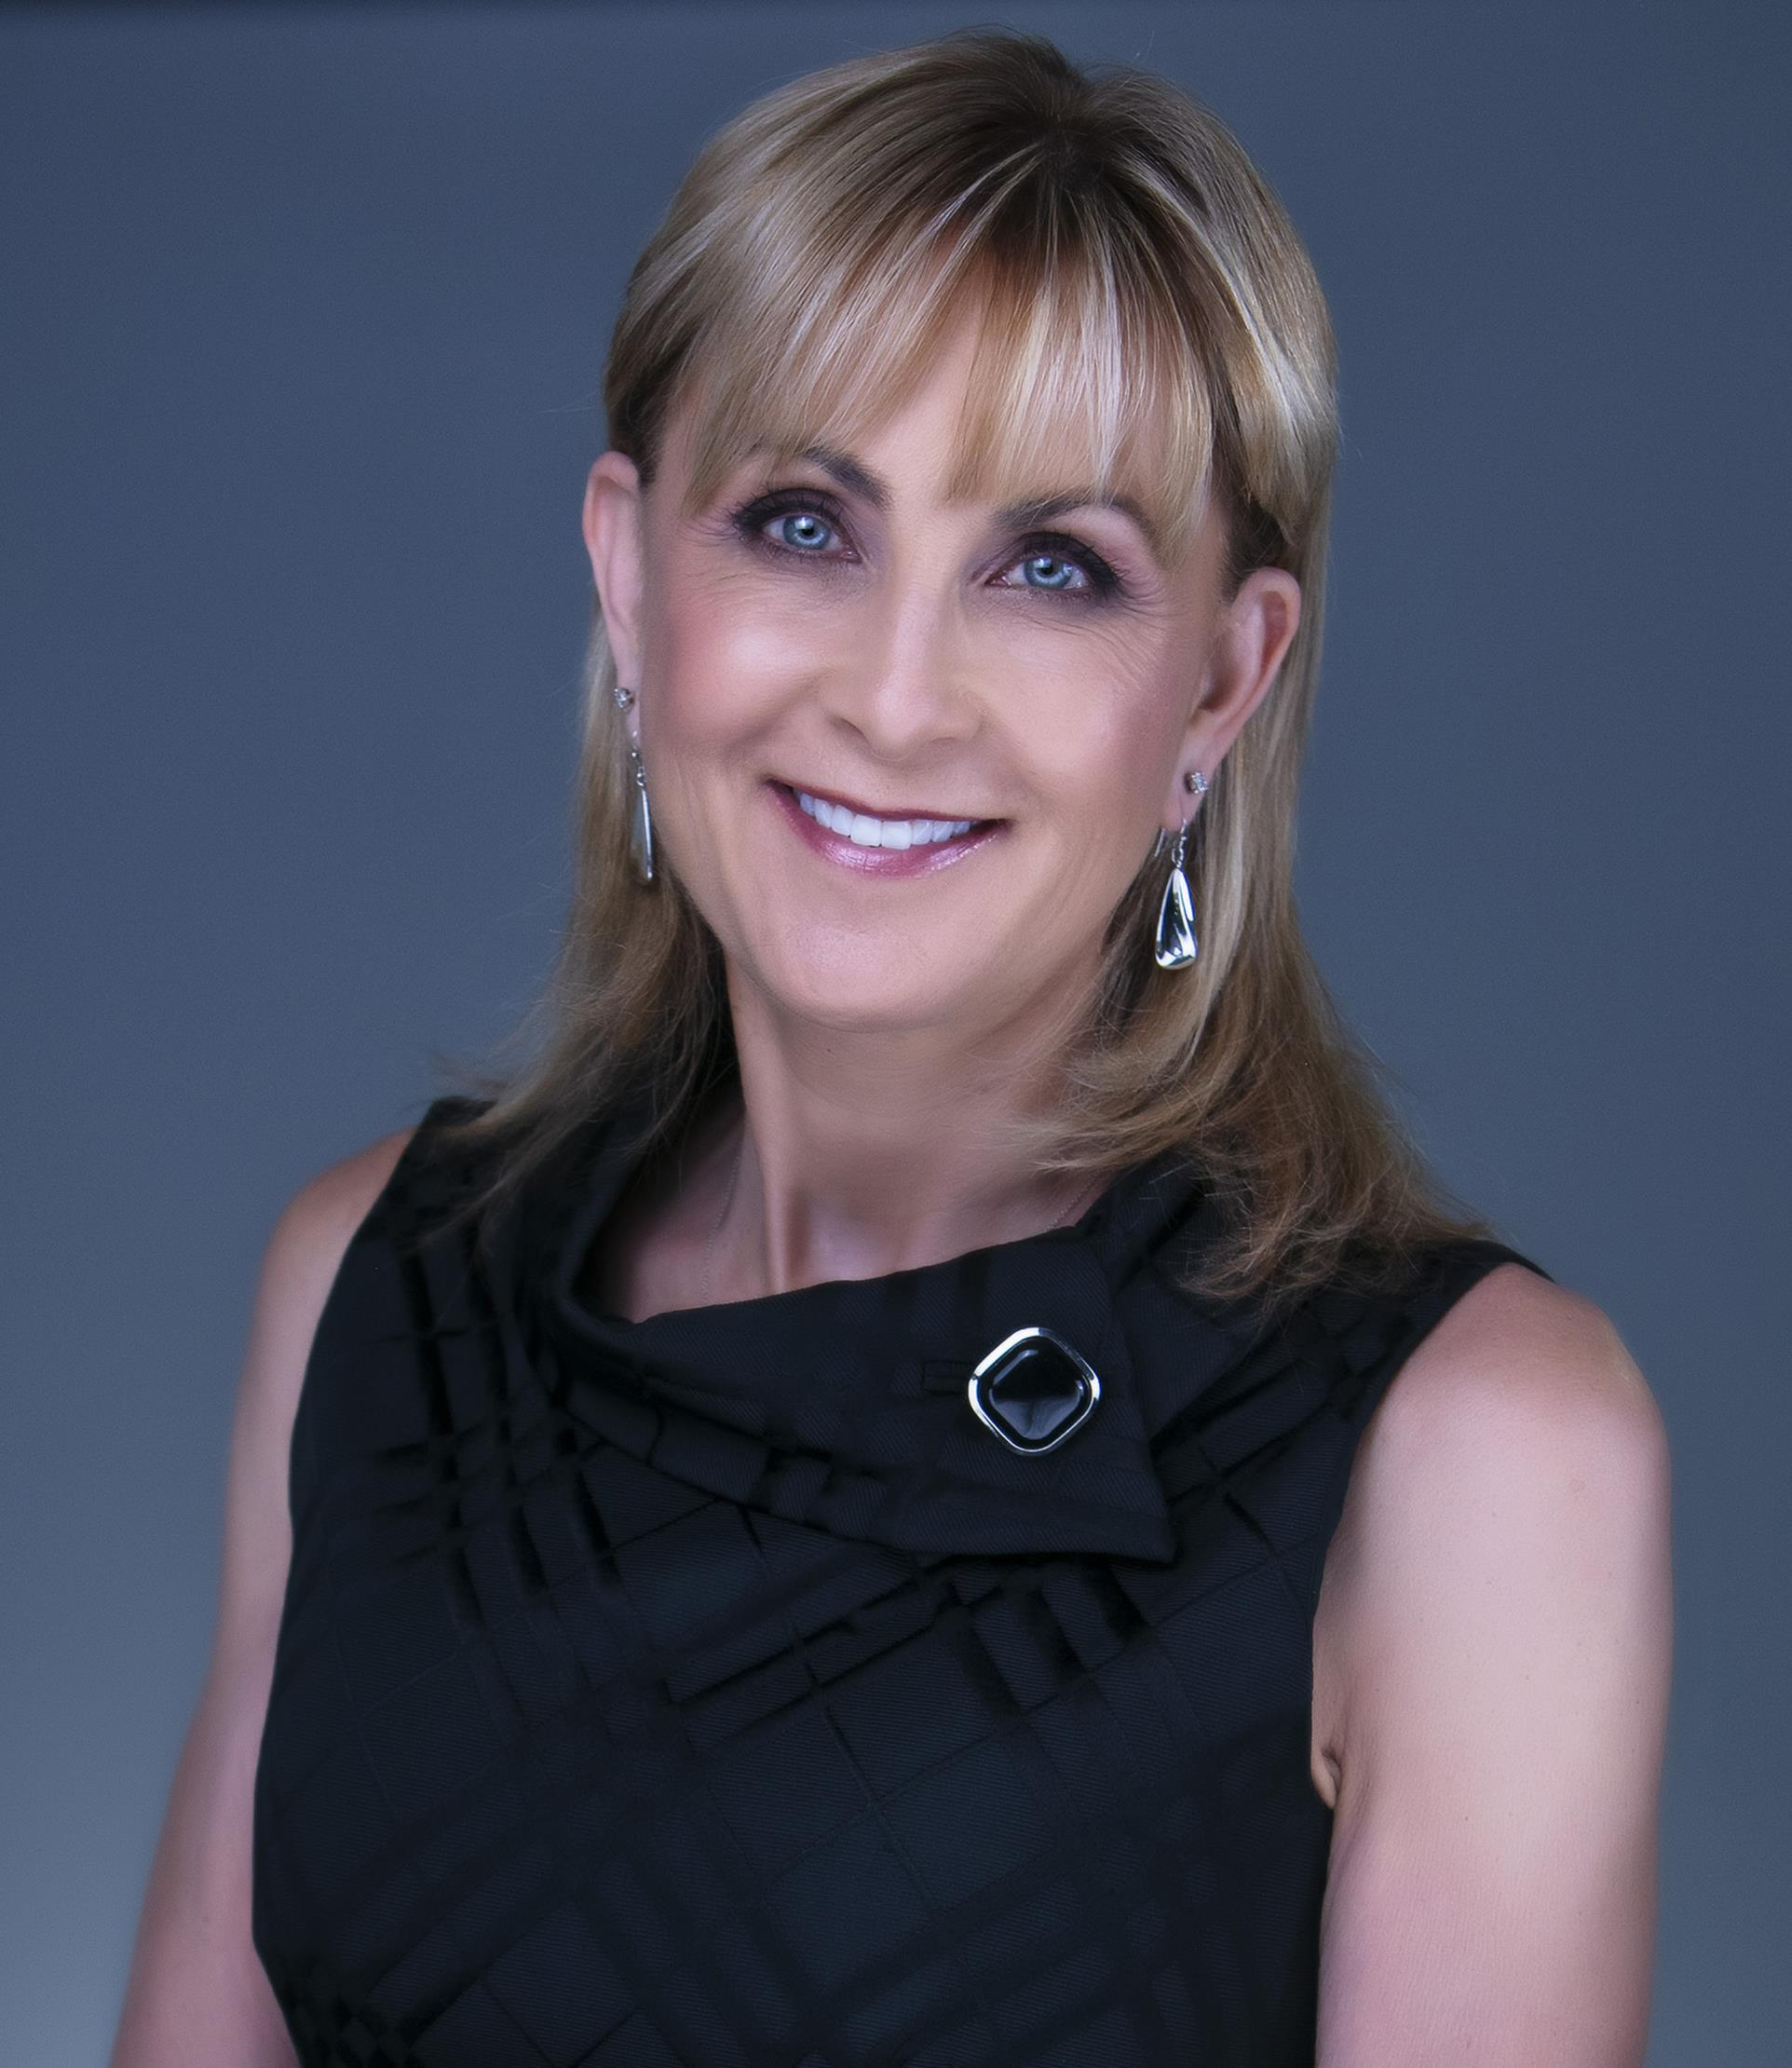 Rhonda Dehner is a licensed real estate agent in Leawood KS